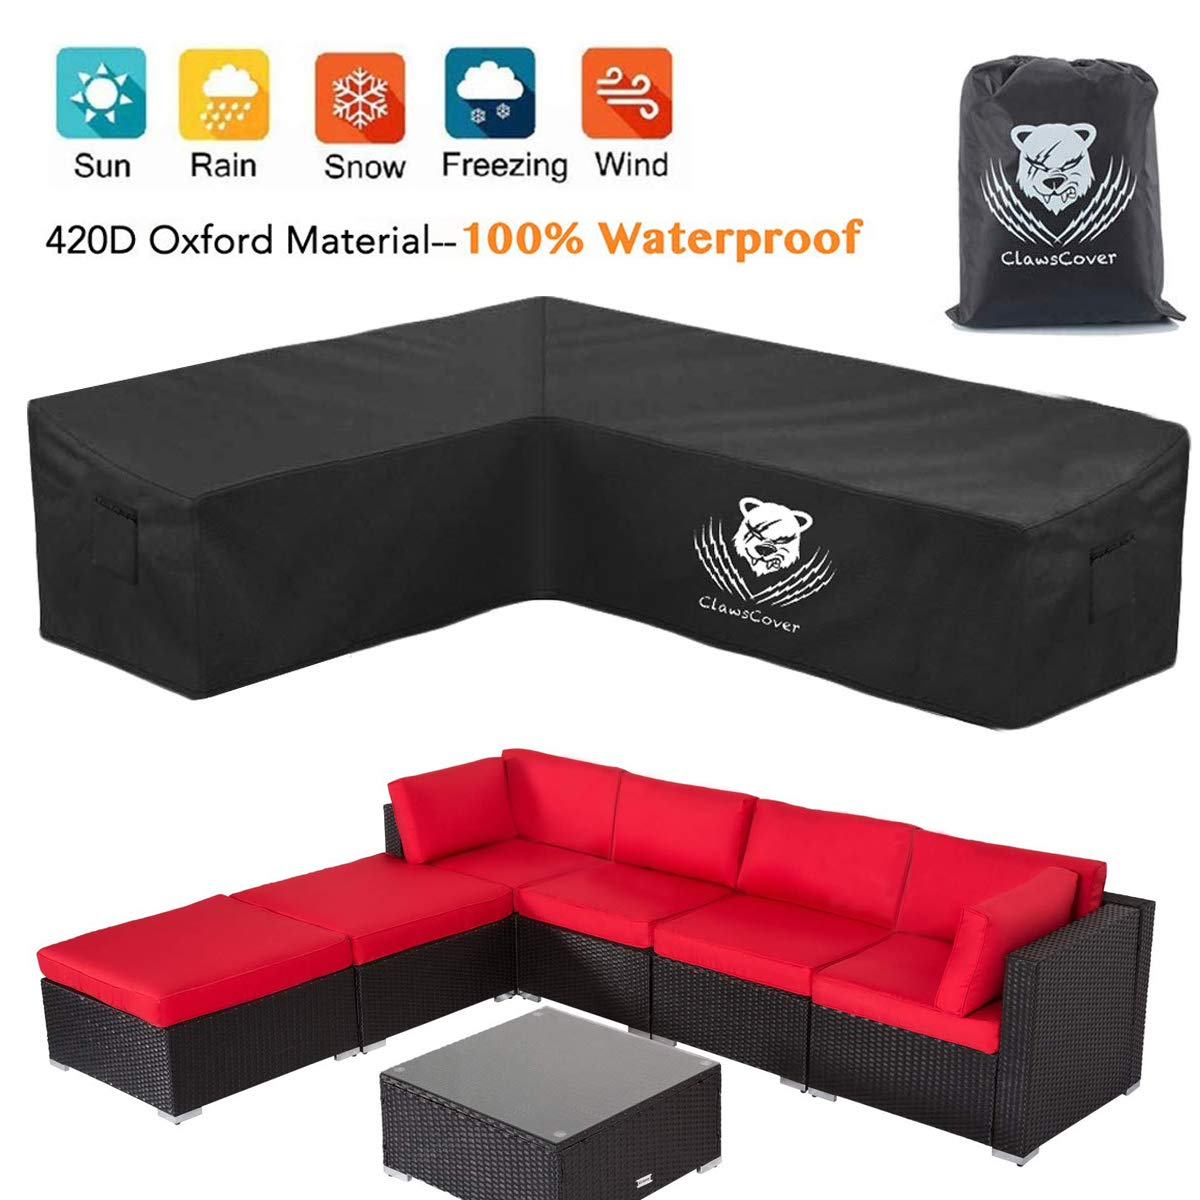 ClawsCover L-Shaped Sectional Sofa Covers Waterproof Outdoor Tear Proof  Patio Couch Cover Garden Furniture Protector,10 Windproof Straps,10 Air